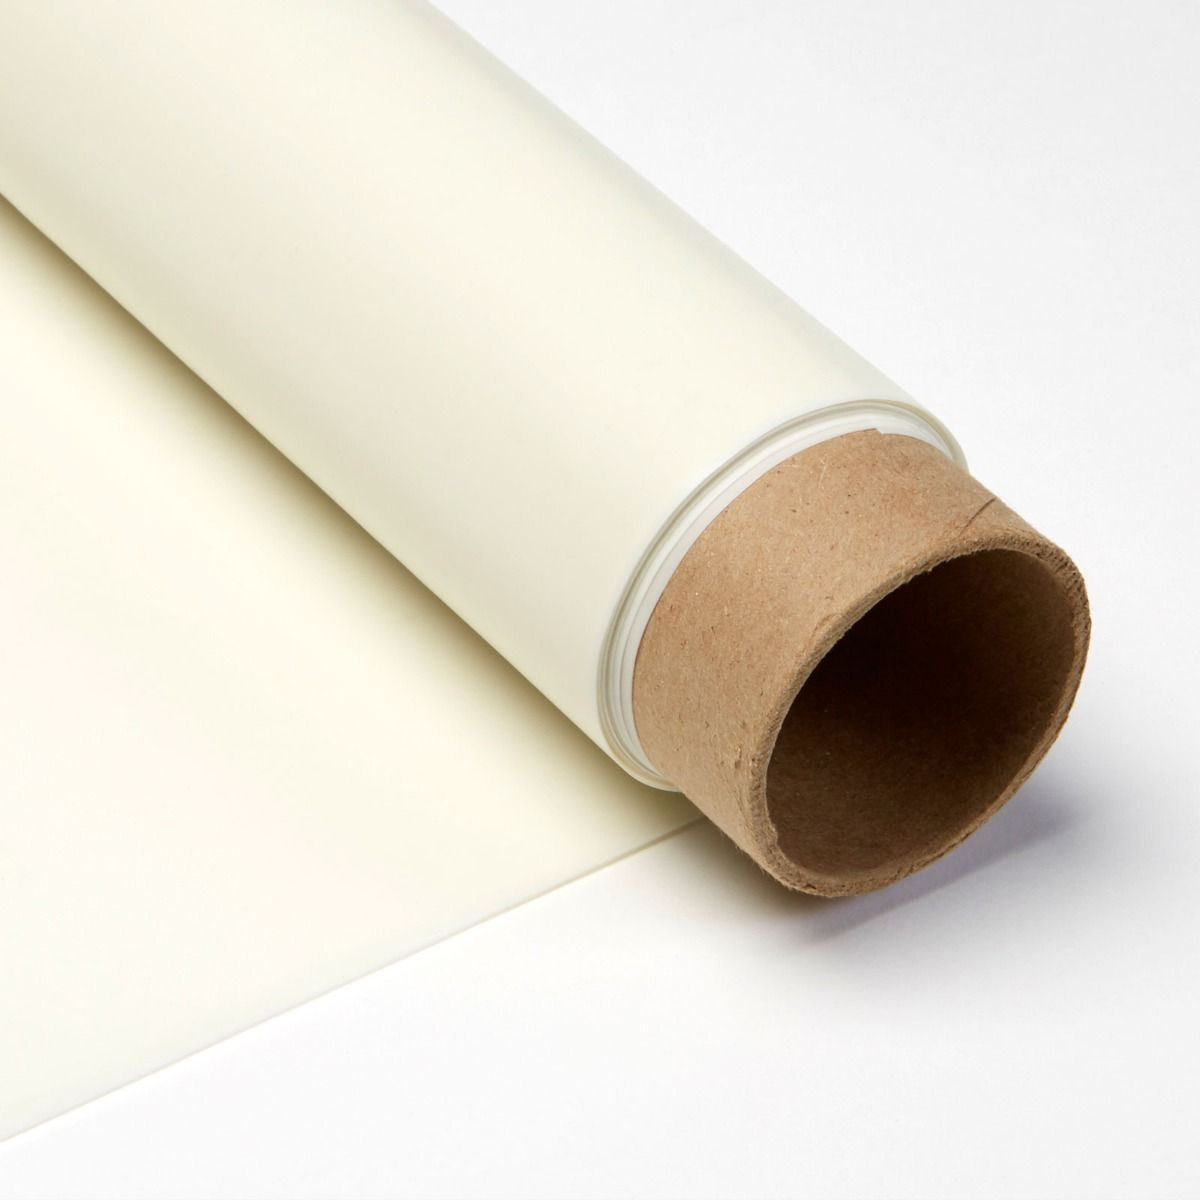 White Rear Projection Material Shipped in a Tube